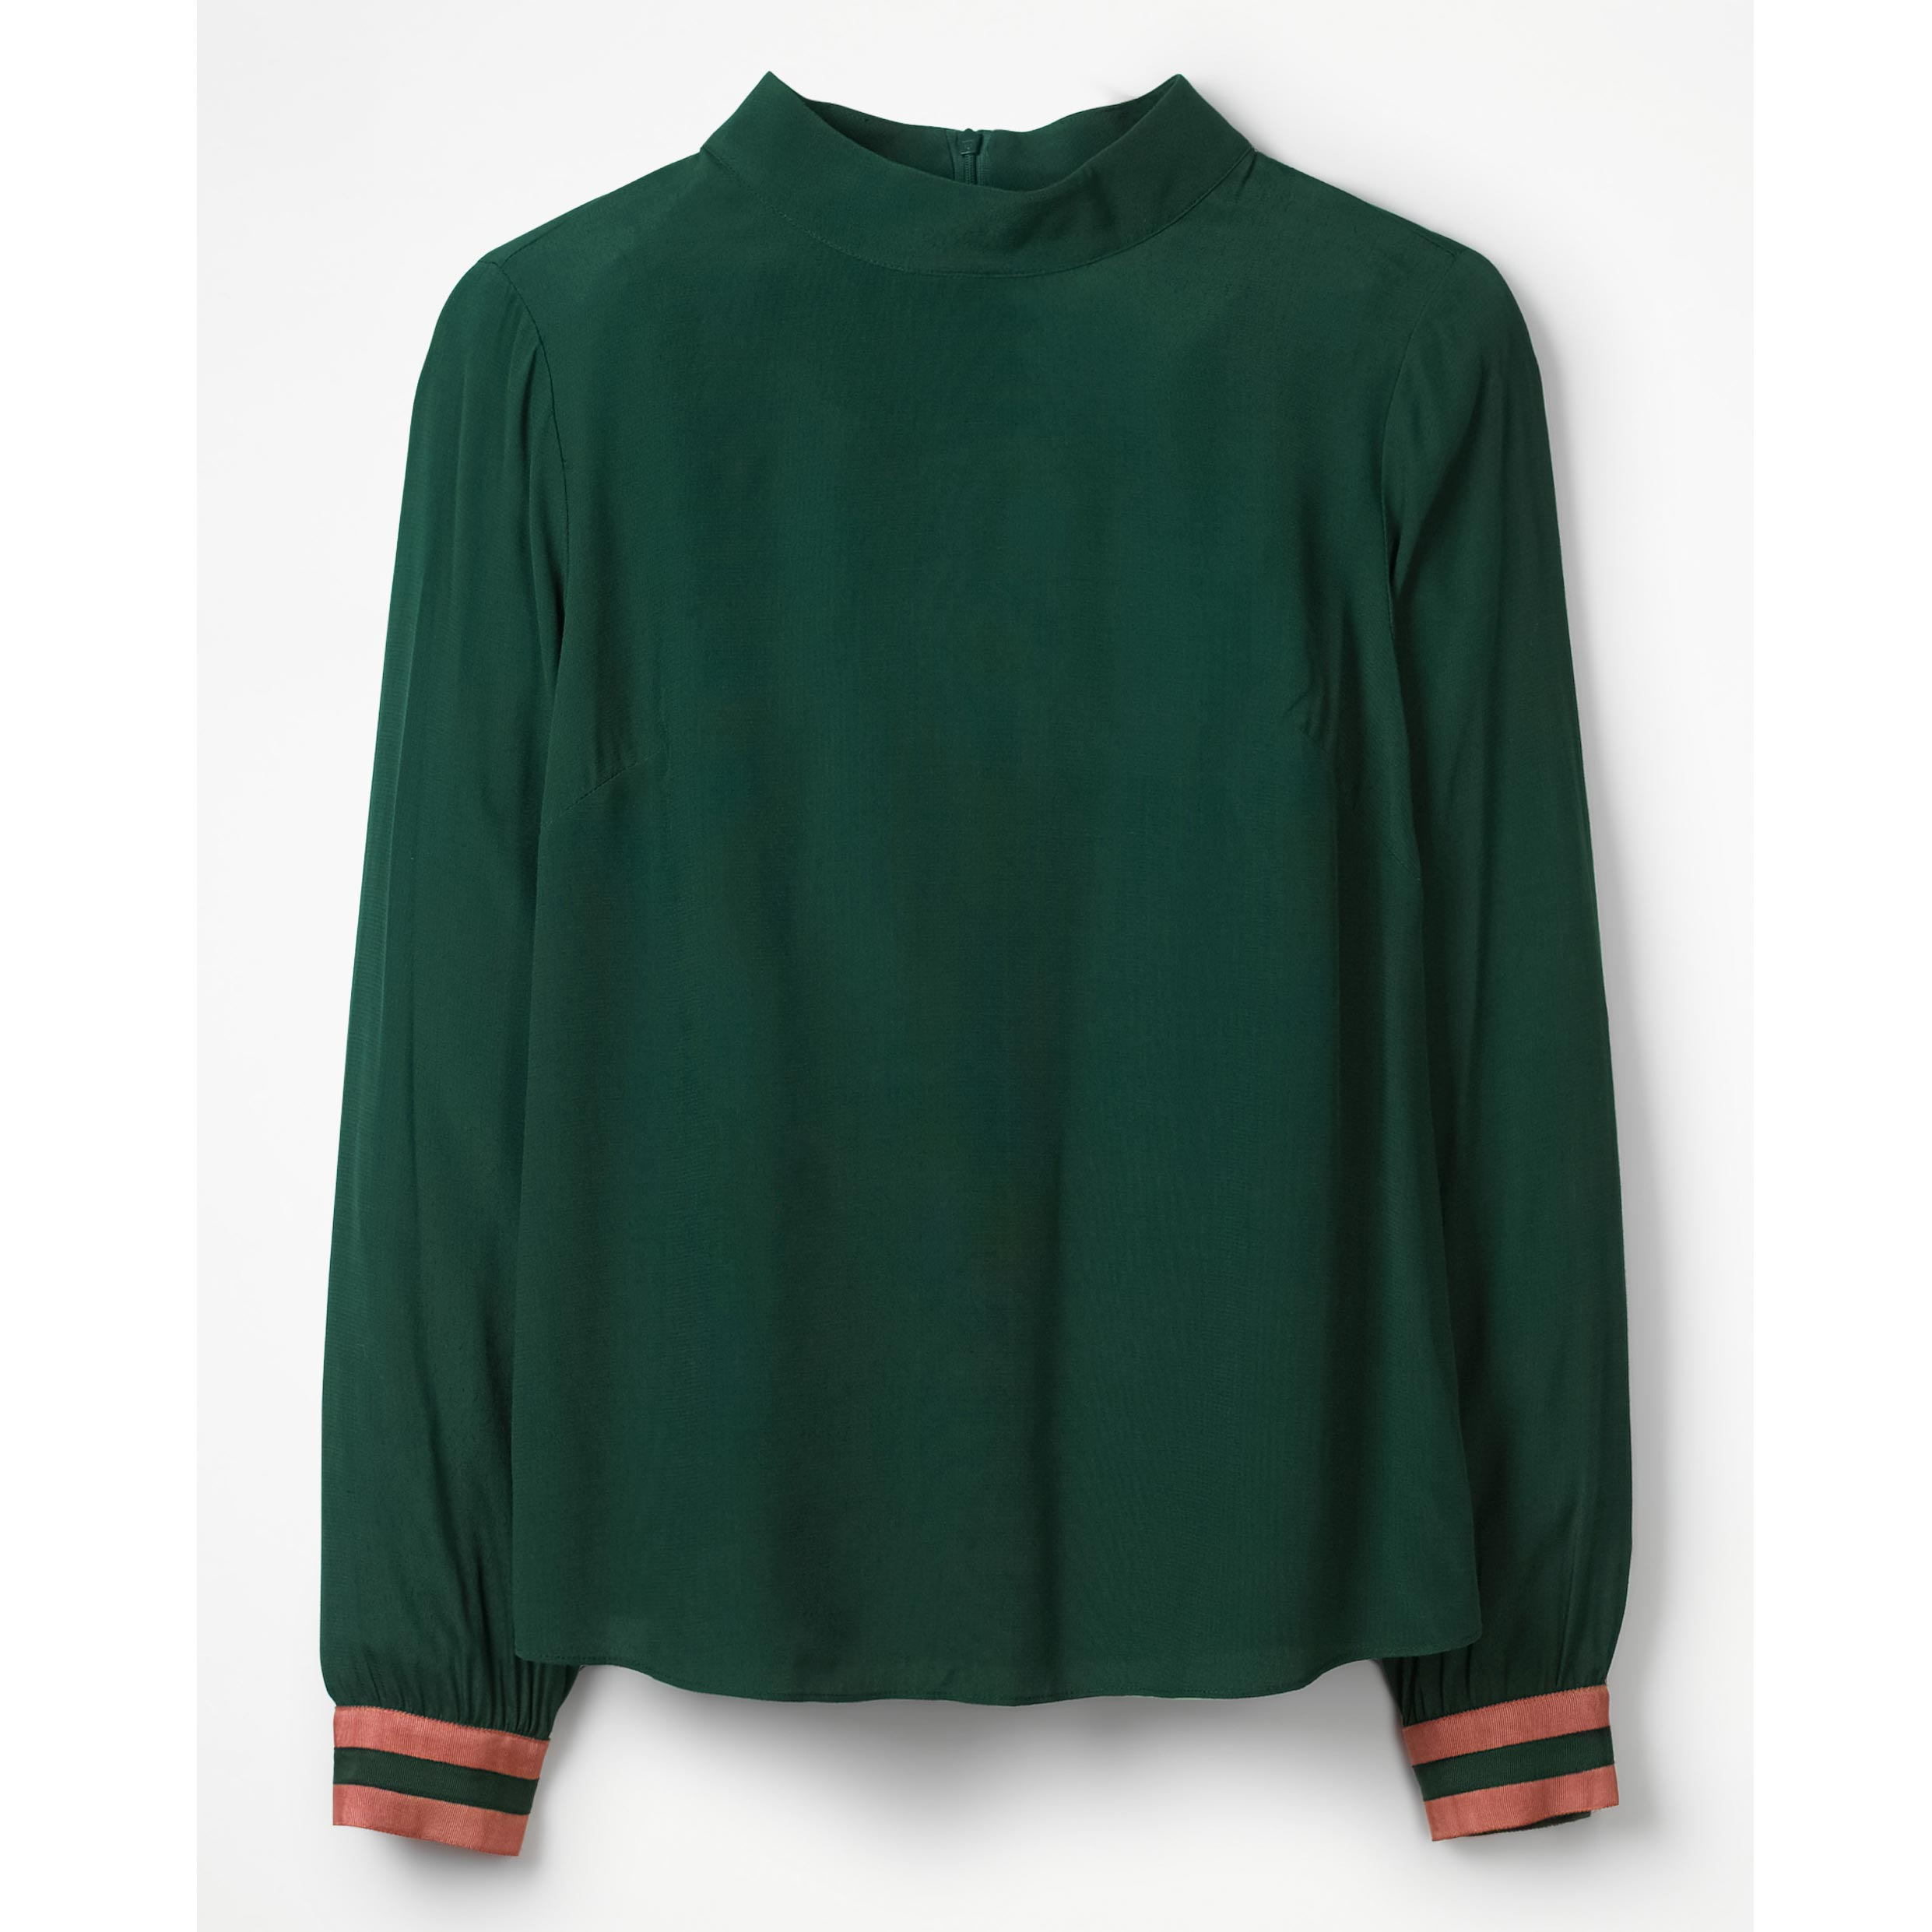 BODEN LOUISE TOP